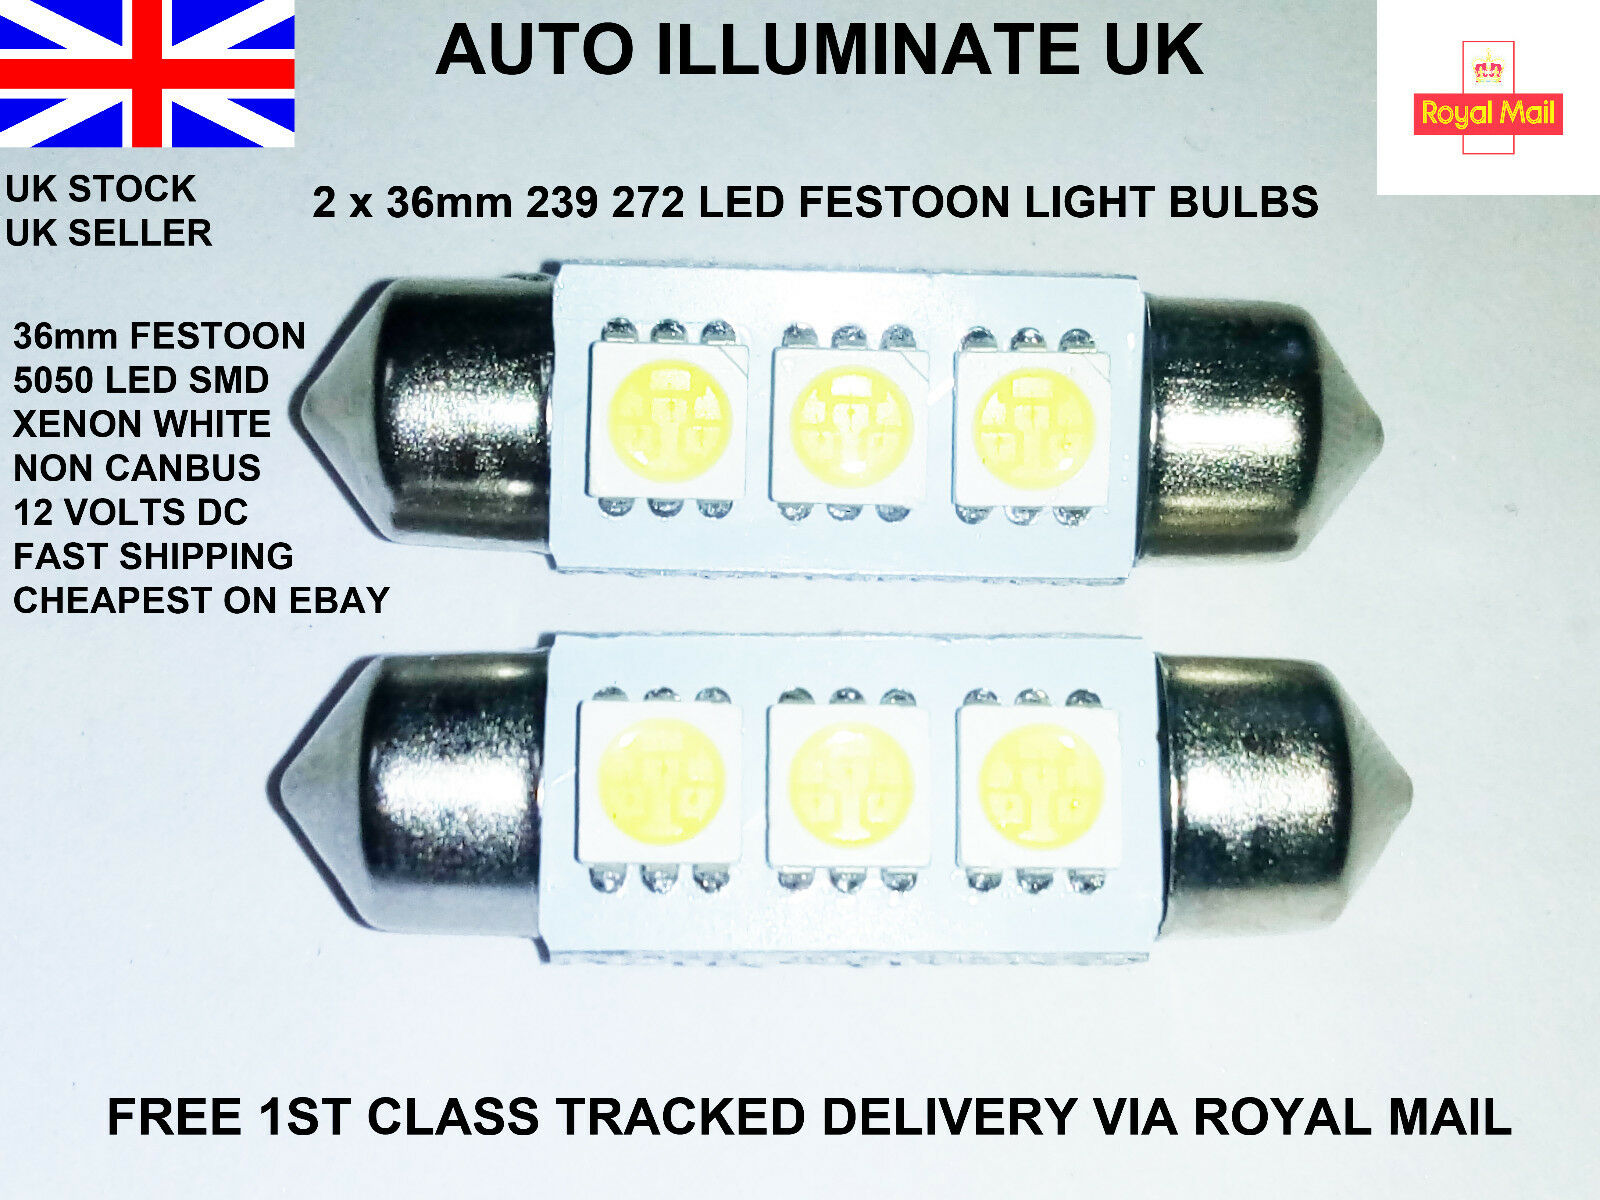 Car Parts - 2x 36mm Car Led Smd 239 272 C5W White Number Plate Festoon Light Bulbs Lamps 12V